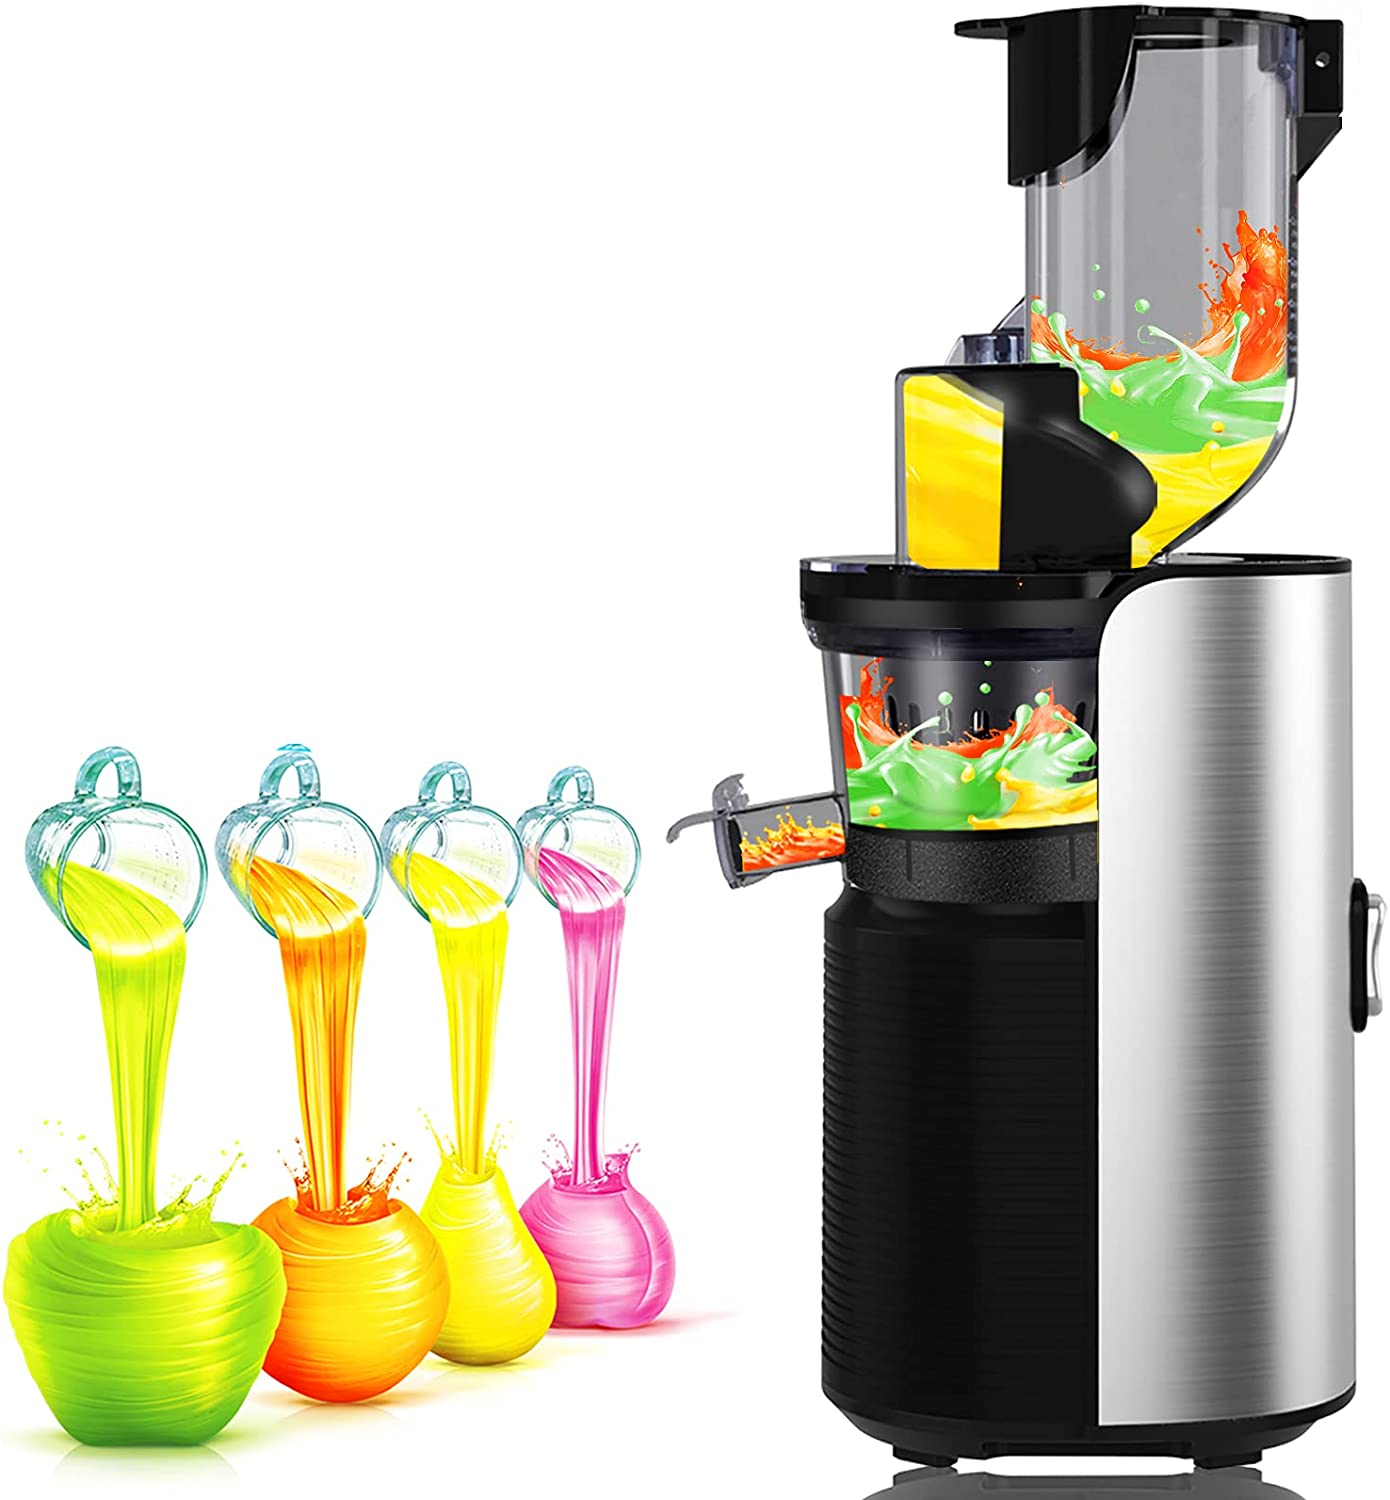 """Viesimple Juicer Machines Cold Press Juicers Masticating Juicer for Vegetable Fruit Juice Smoothies Easy to Clean Juicer Extractor, Quite Low db, Large WIDE 3.15"""" Turn Over Wide Chute Juicer Machine"""